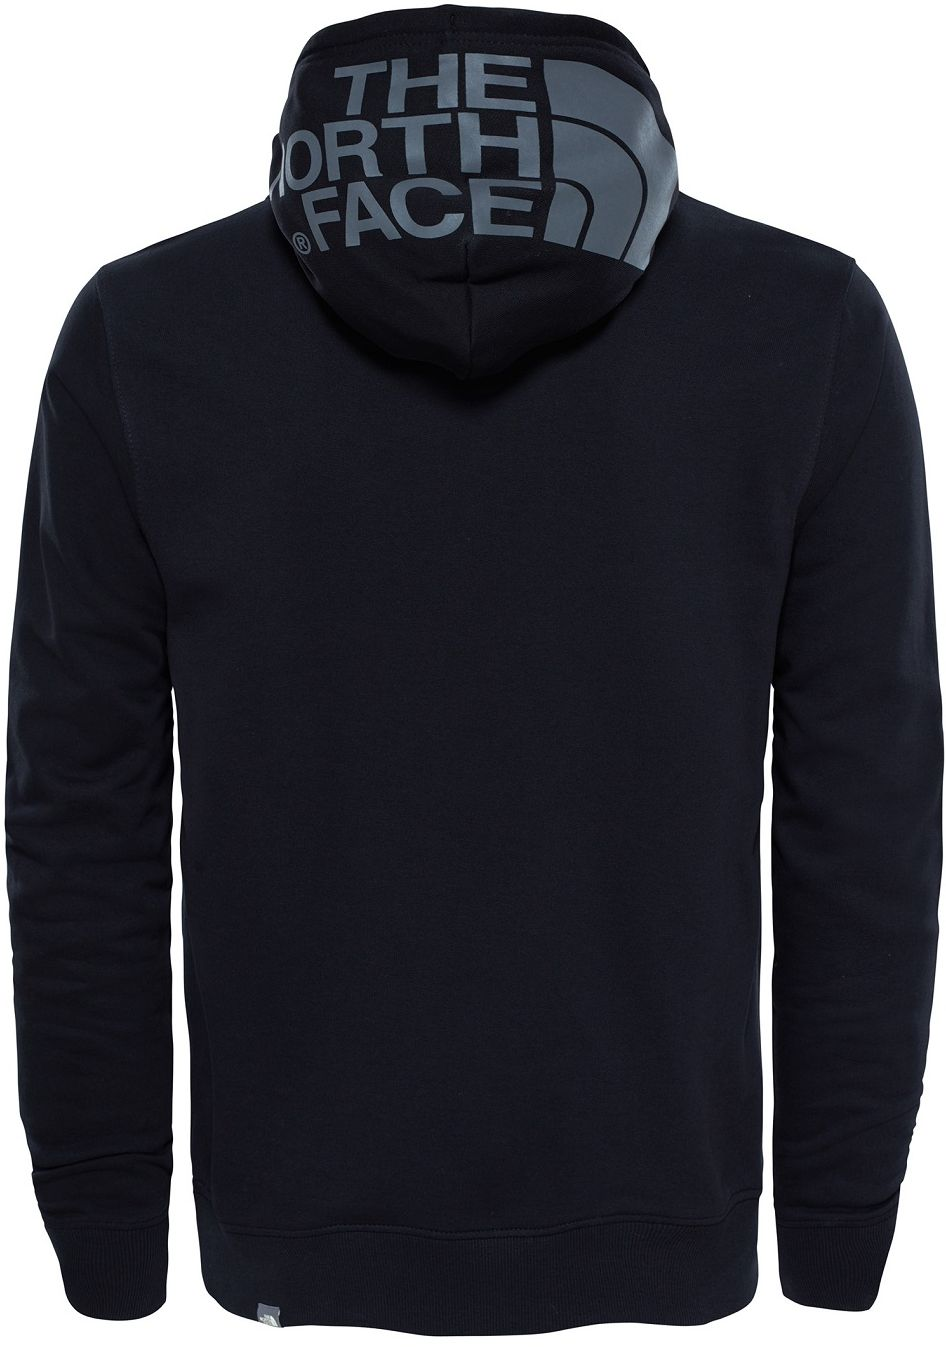 THE-NORTH-FACE-TNF-Seasonal-Drew-Peak-Light-Sweat-a-Capuche-pour-Hommes-Nouveau miniature 15